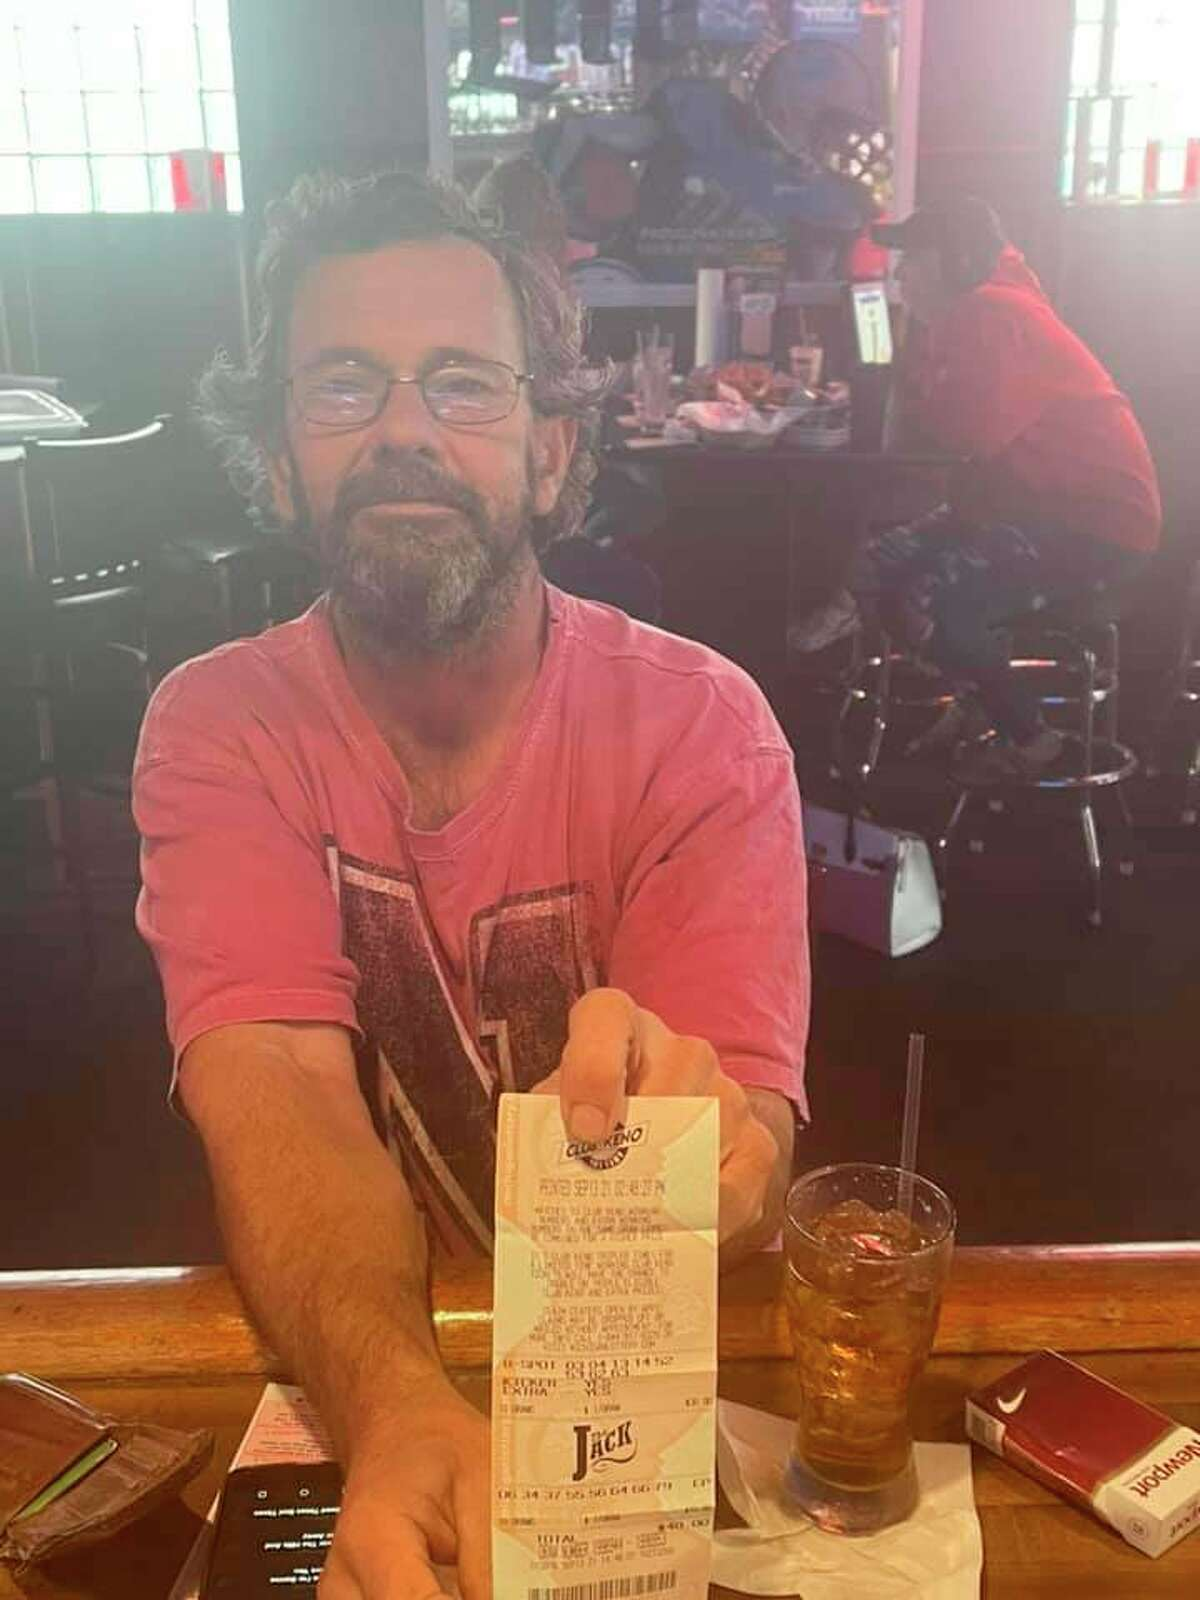 Gregory Jarvis shows off his winning lottery ticket. (Courtesy Photo via Facebook)